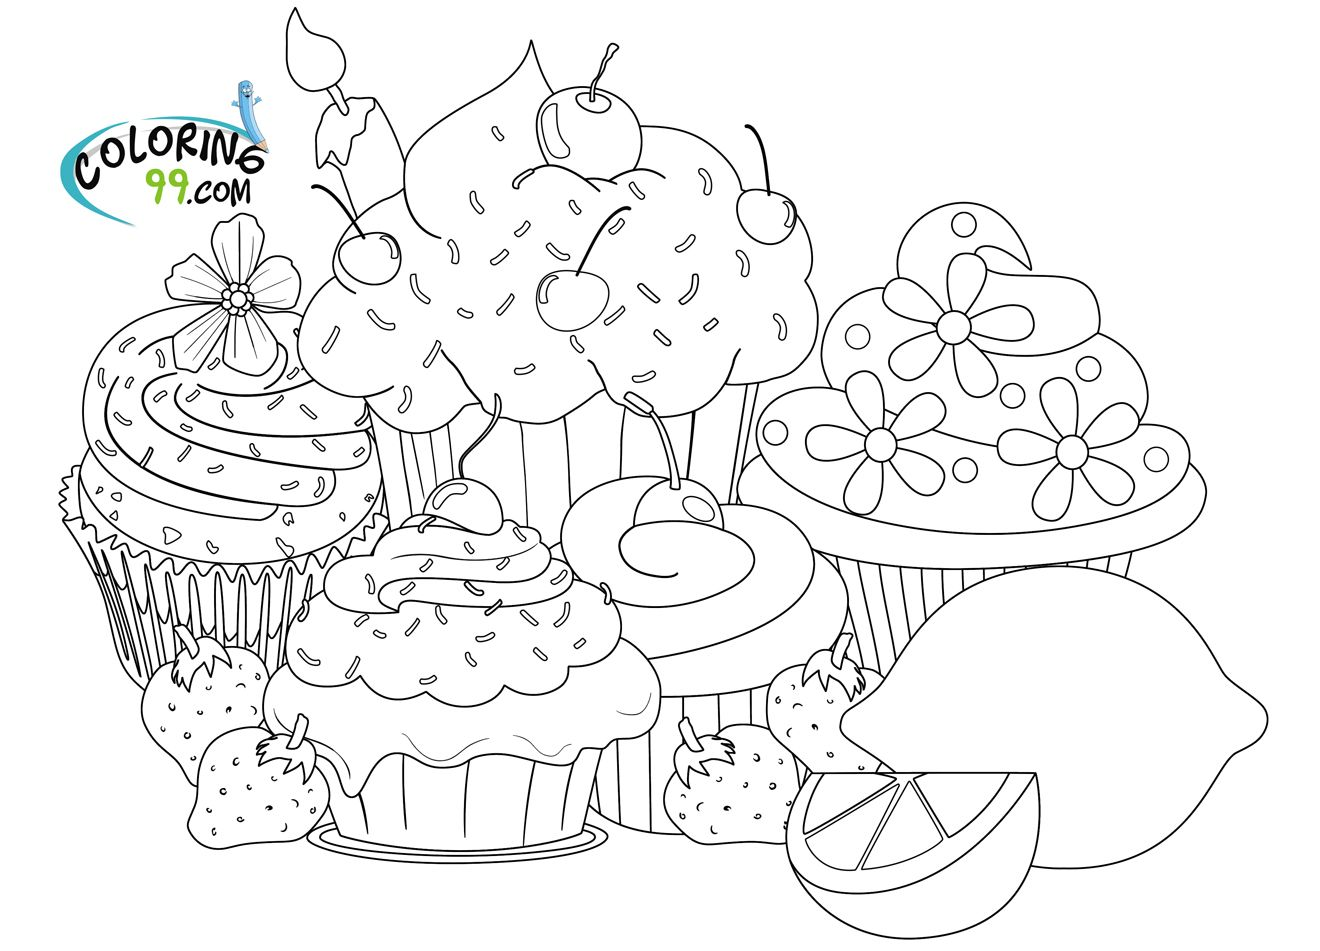 Coloring Pages For Girls Hard Food Dibujos Hojas Para Colorear Mandalas Para Colorear